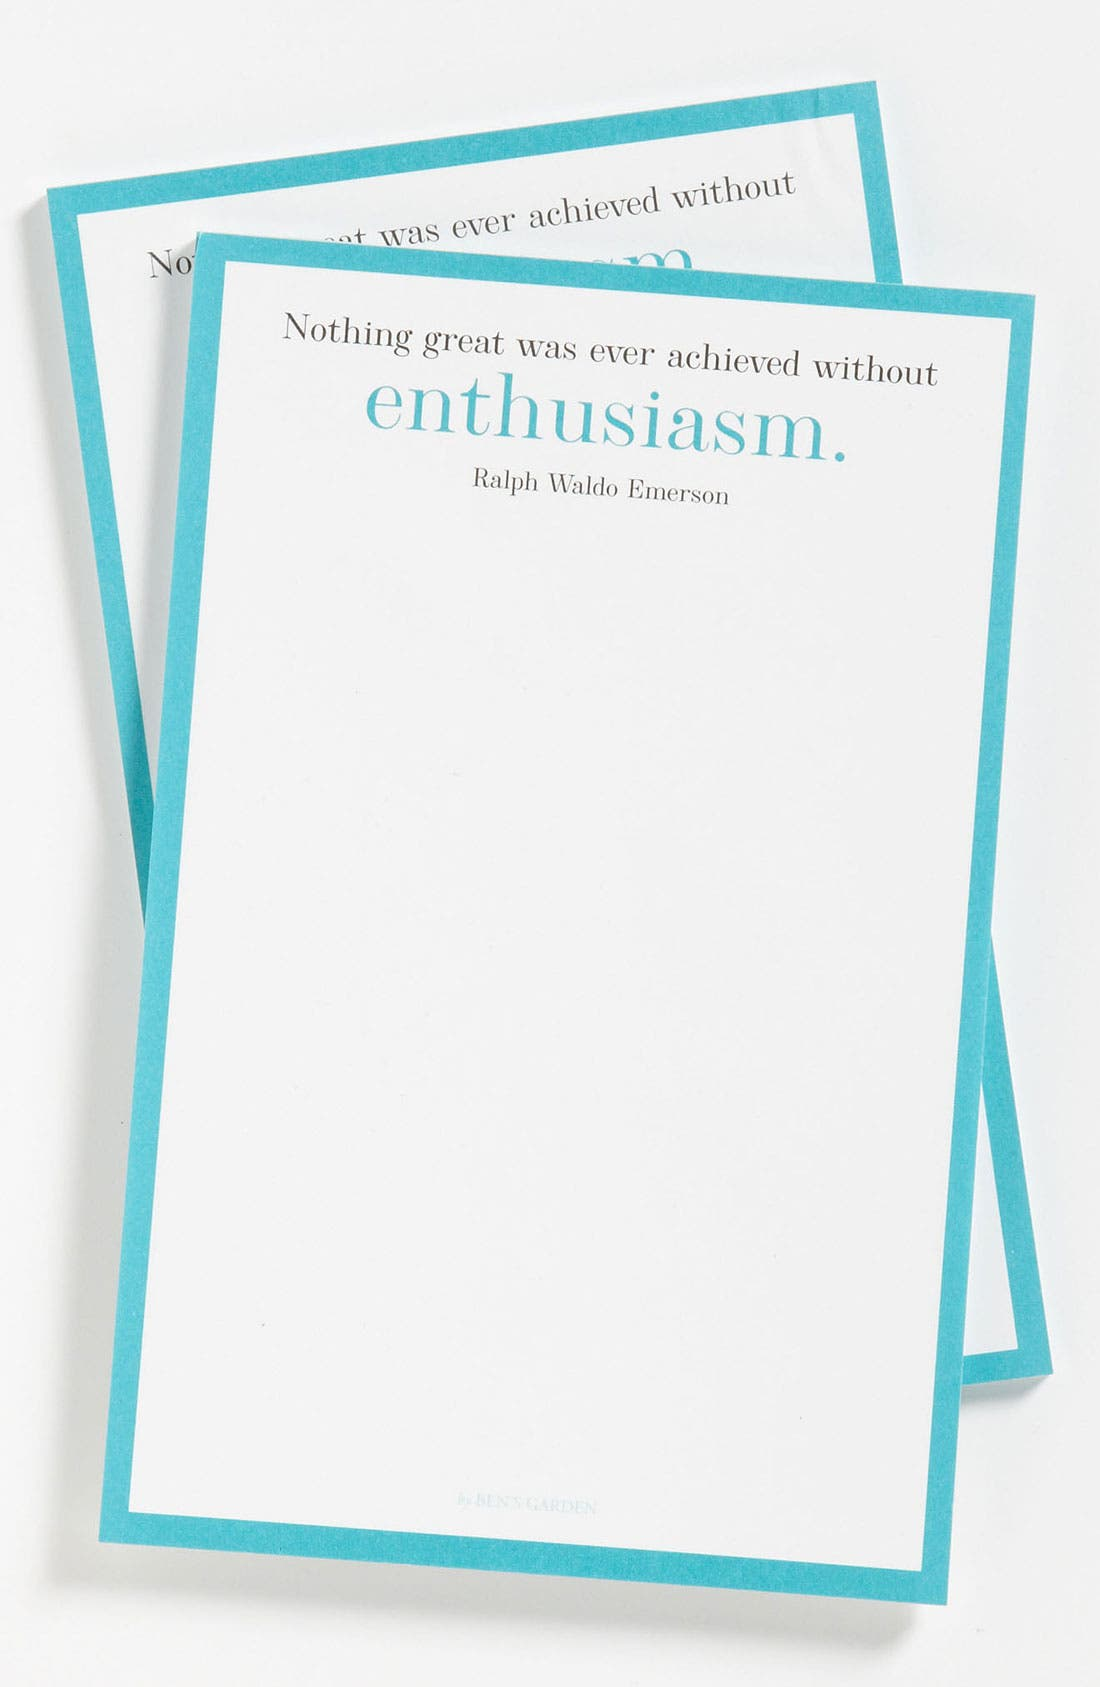 Alternate Image 1 Selected - Ben's Garden 'Nothing Great' Notepads (2-Pack)